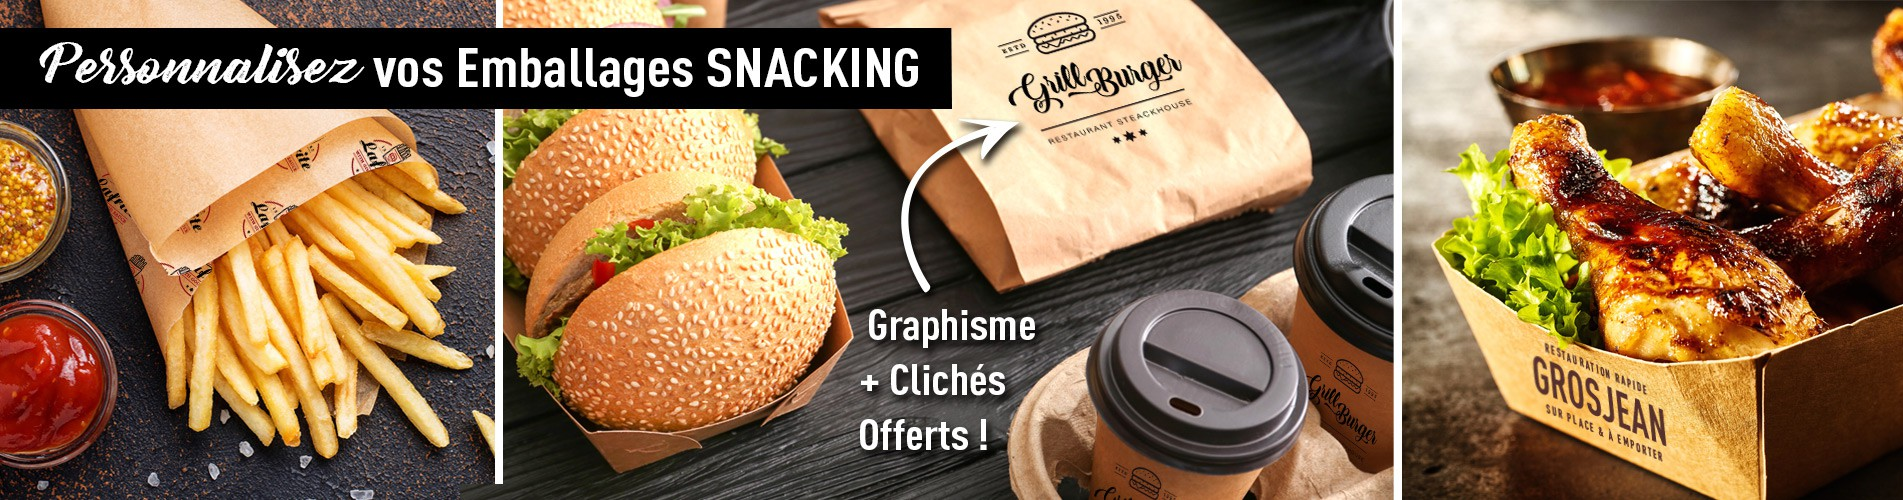 emballage-personnalisé-snacking